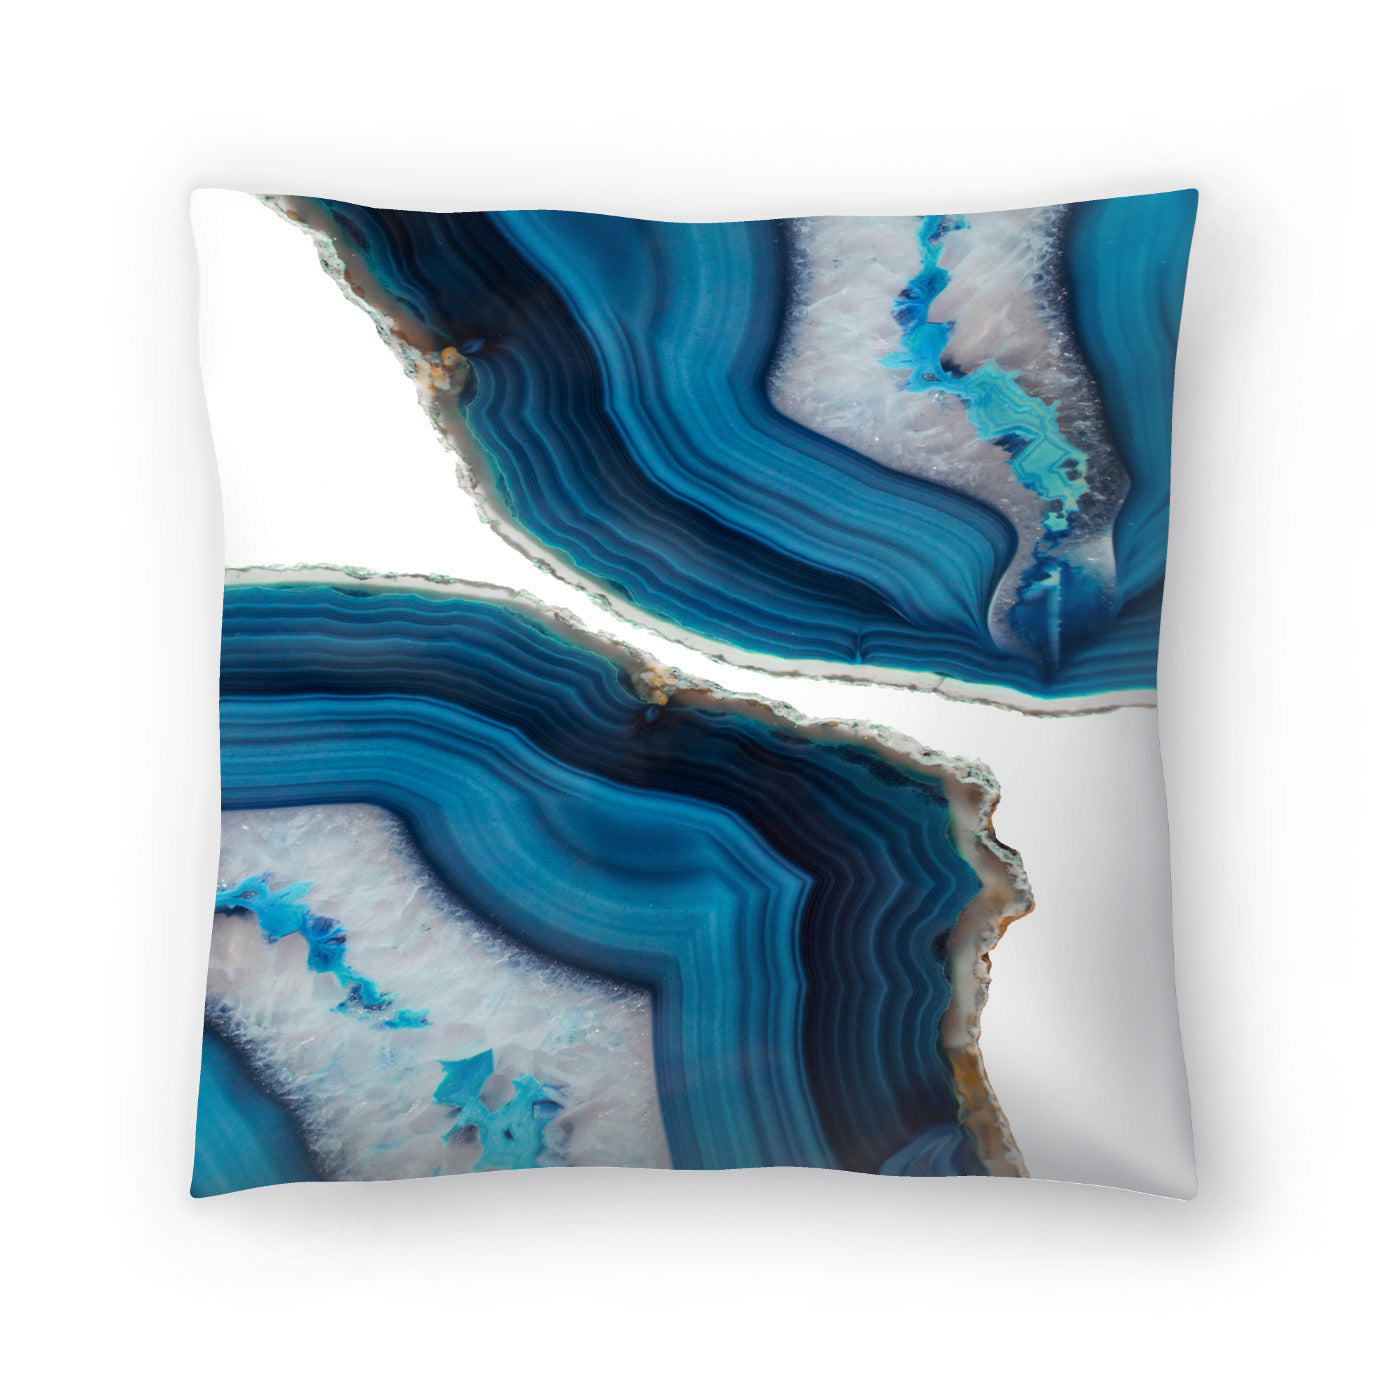 Blue Agate by Emanuela Carratoni Decorative Pillow - Decorative Pillow - Americanflat